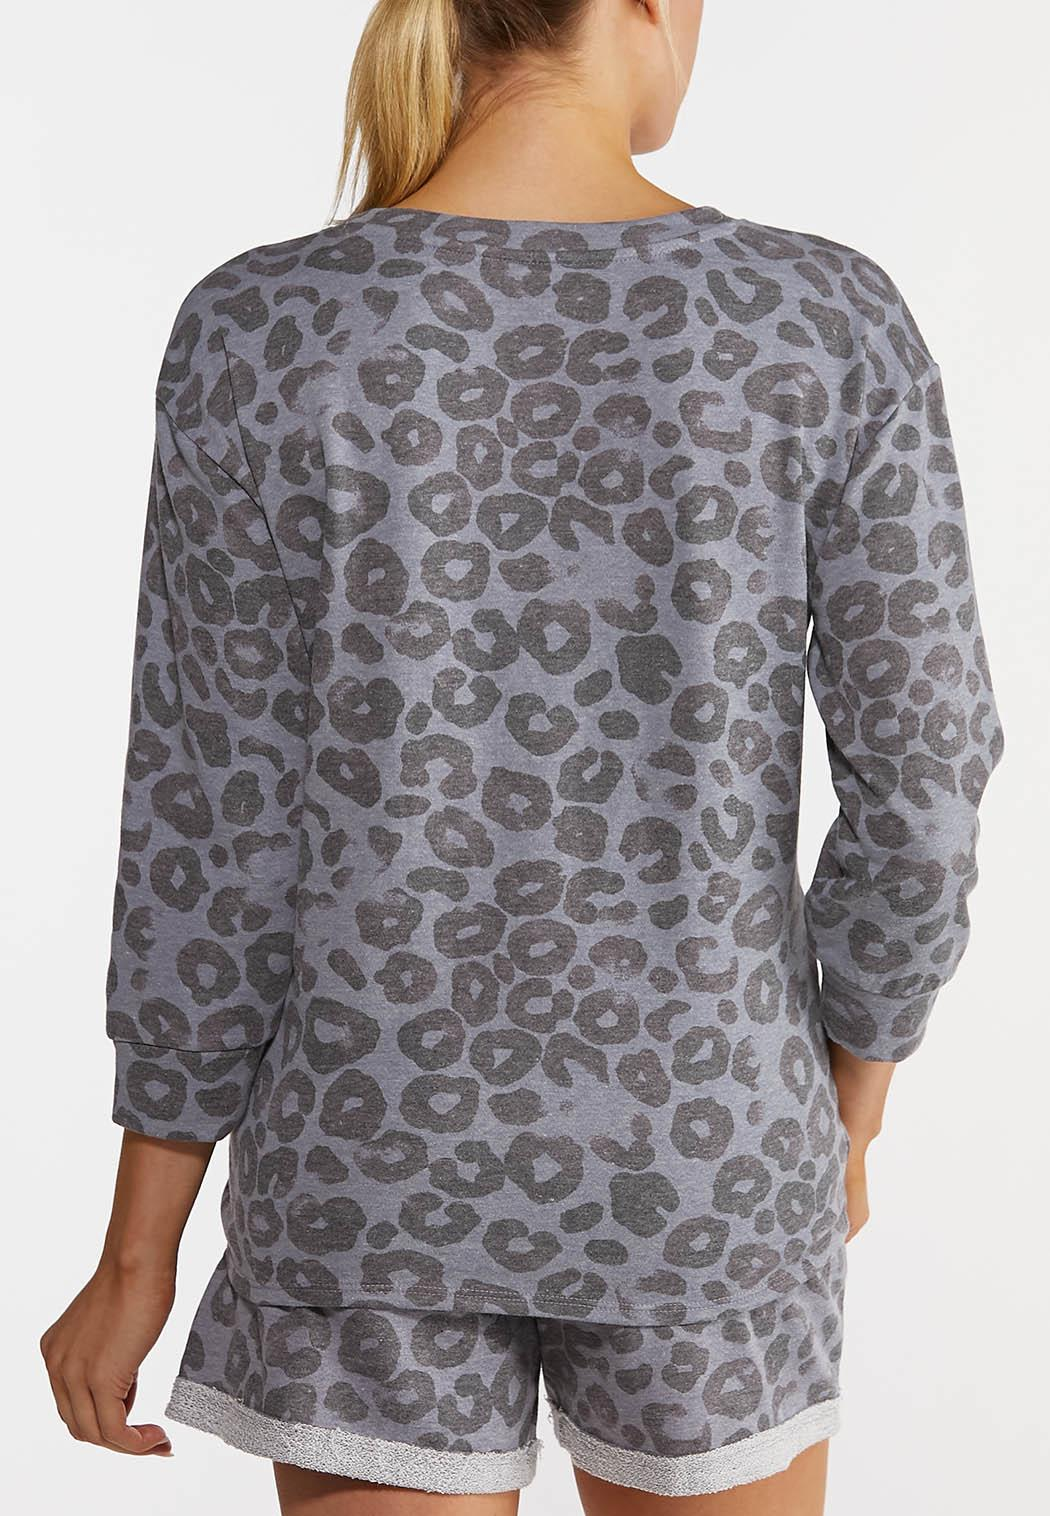 Gray Leopard Knotted Top (Item #44213968)